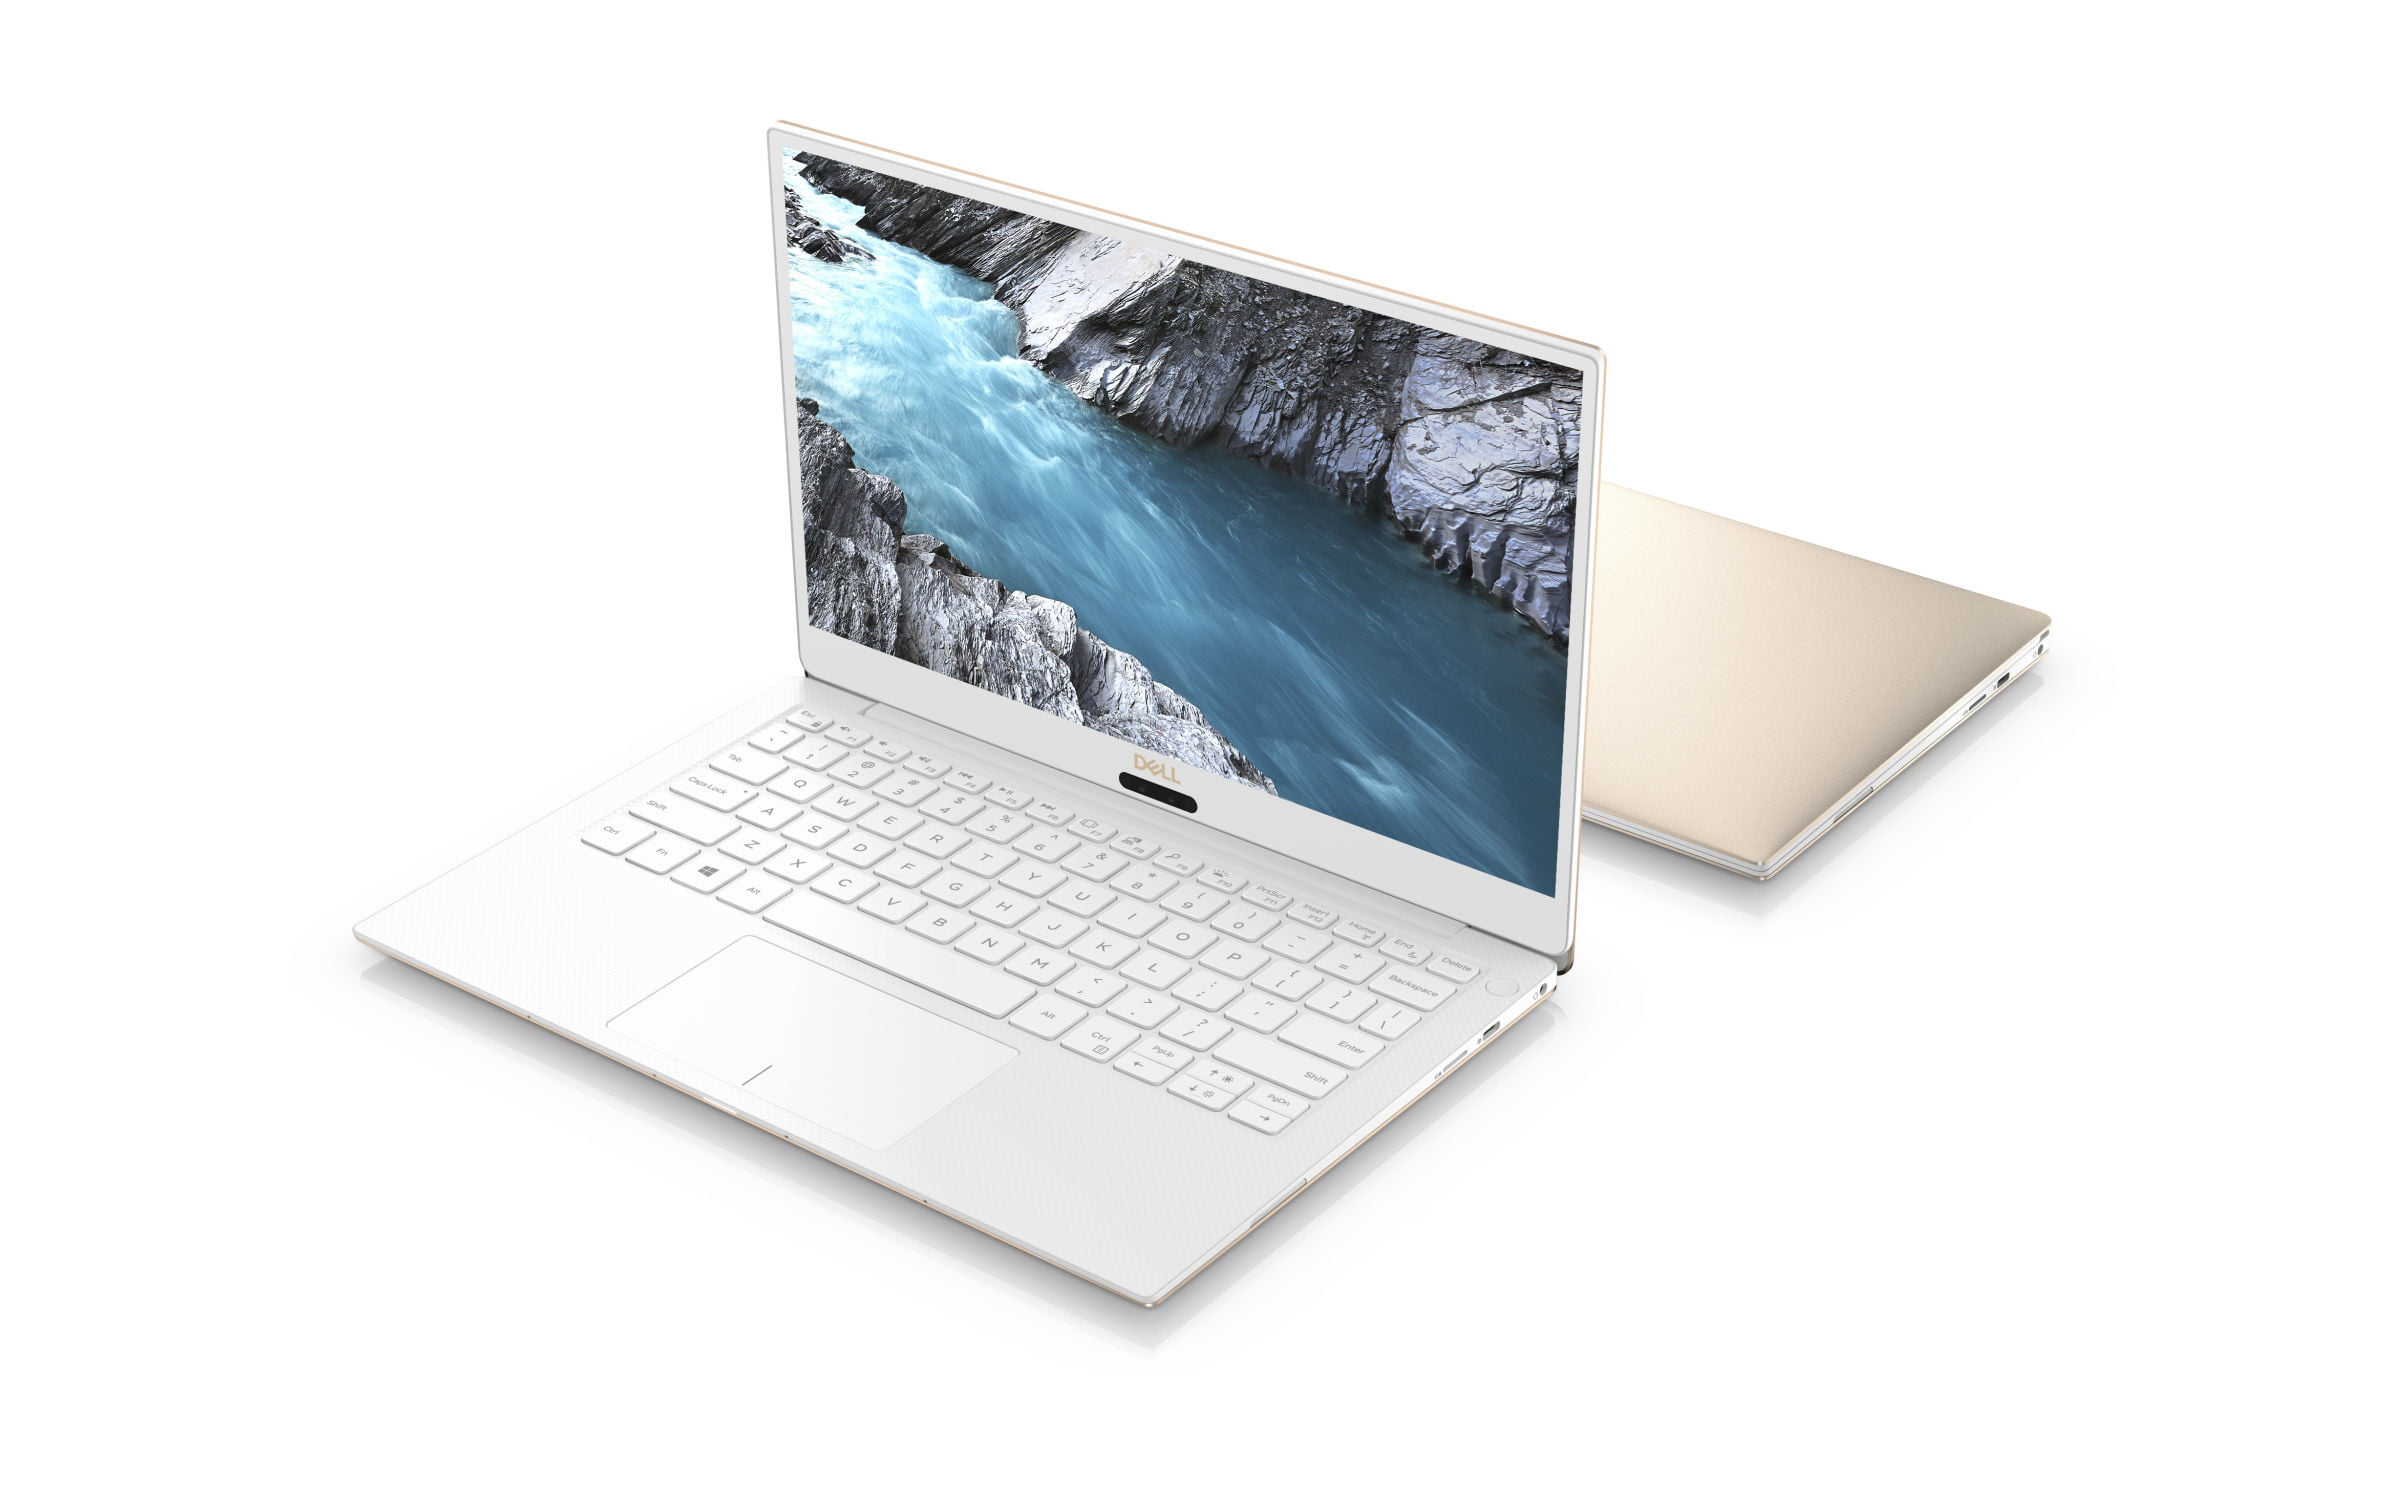 dell xps 13 most anticipated laptop ces 2018 2017 product2